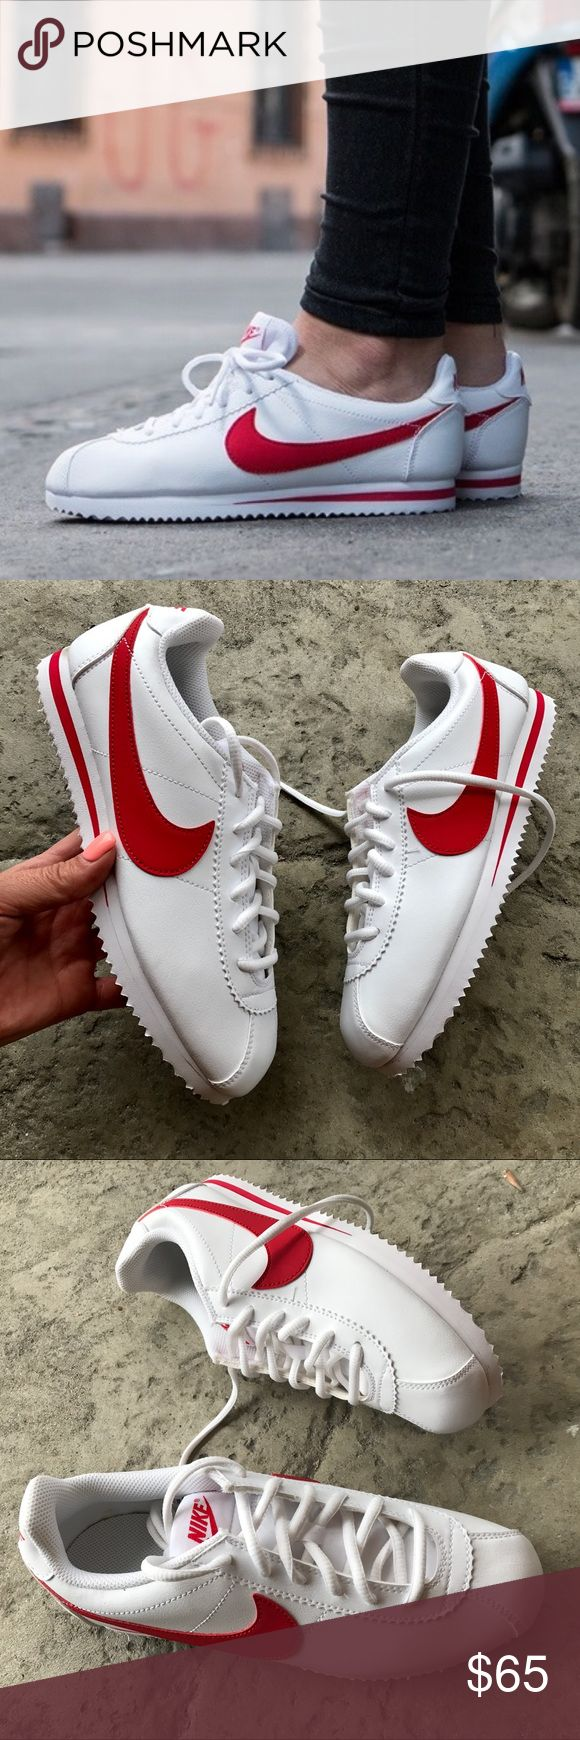 NEW ❤️ NIKE CORTEZ RED & WHITE LEATHER New never worn 😍 NIKE CLASSIC CORTEZ | WHITE & RED | LEATHER. Runs small. I can help with sizing questions.  📍ORDER YOUR WOMANS SHOE SIZE📍  Size 6 youth approx = size 7 - 7.5 women  NO ORIGINAL BOX, smoke free home.  PRICED FIRM. 100% authentic & direct from NIKE ❤️ Nike Shoes Athletic Shoes